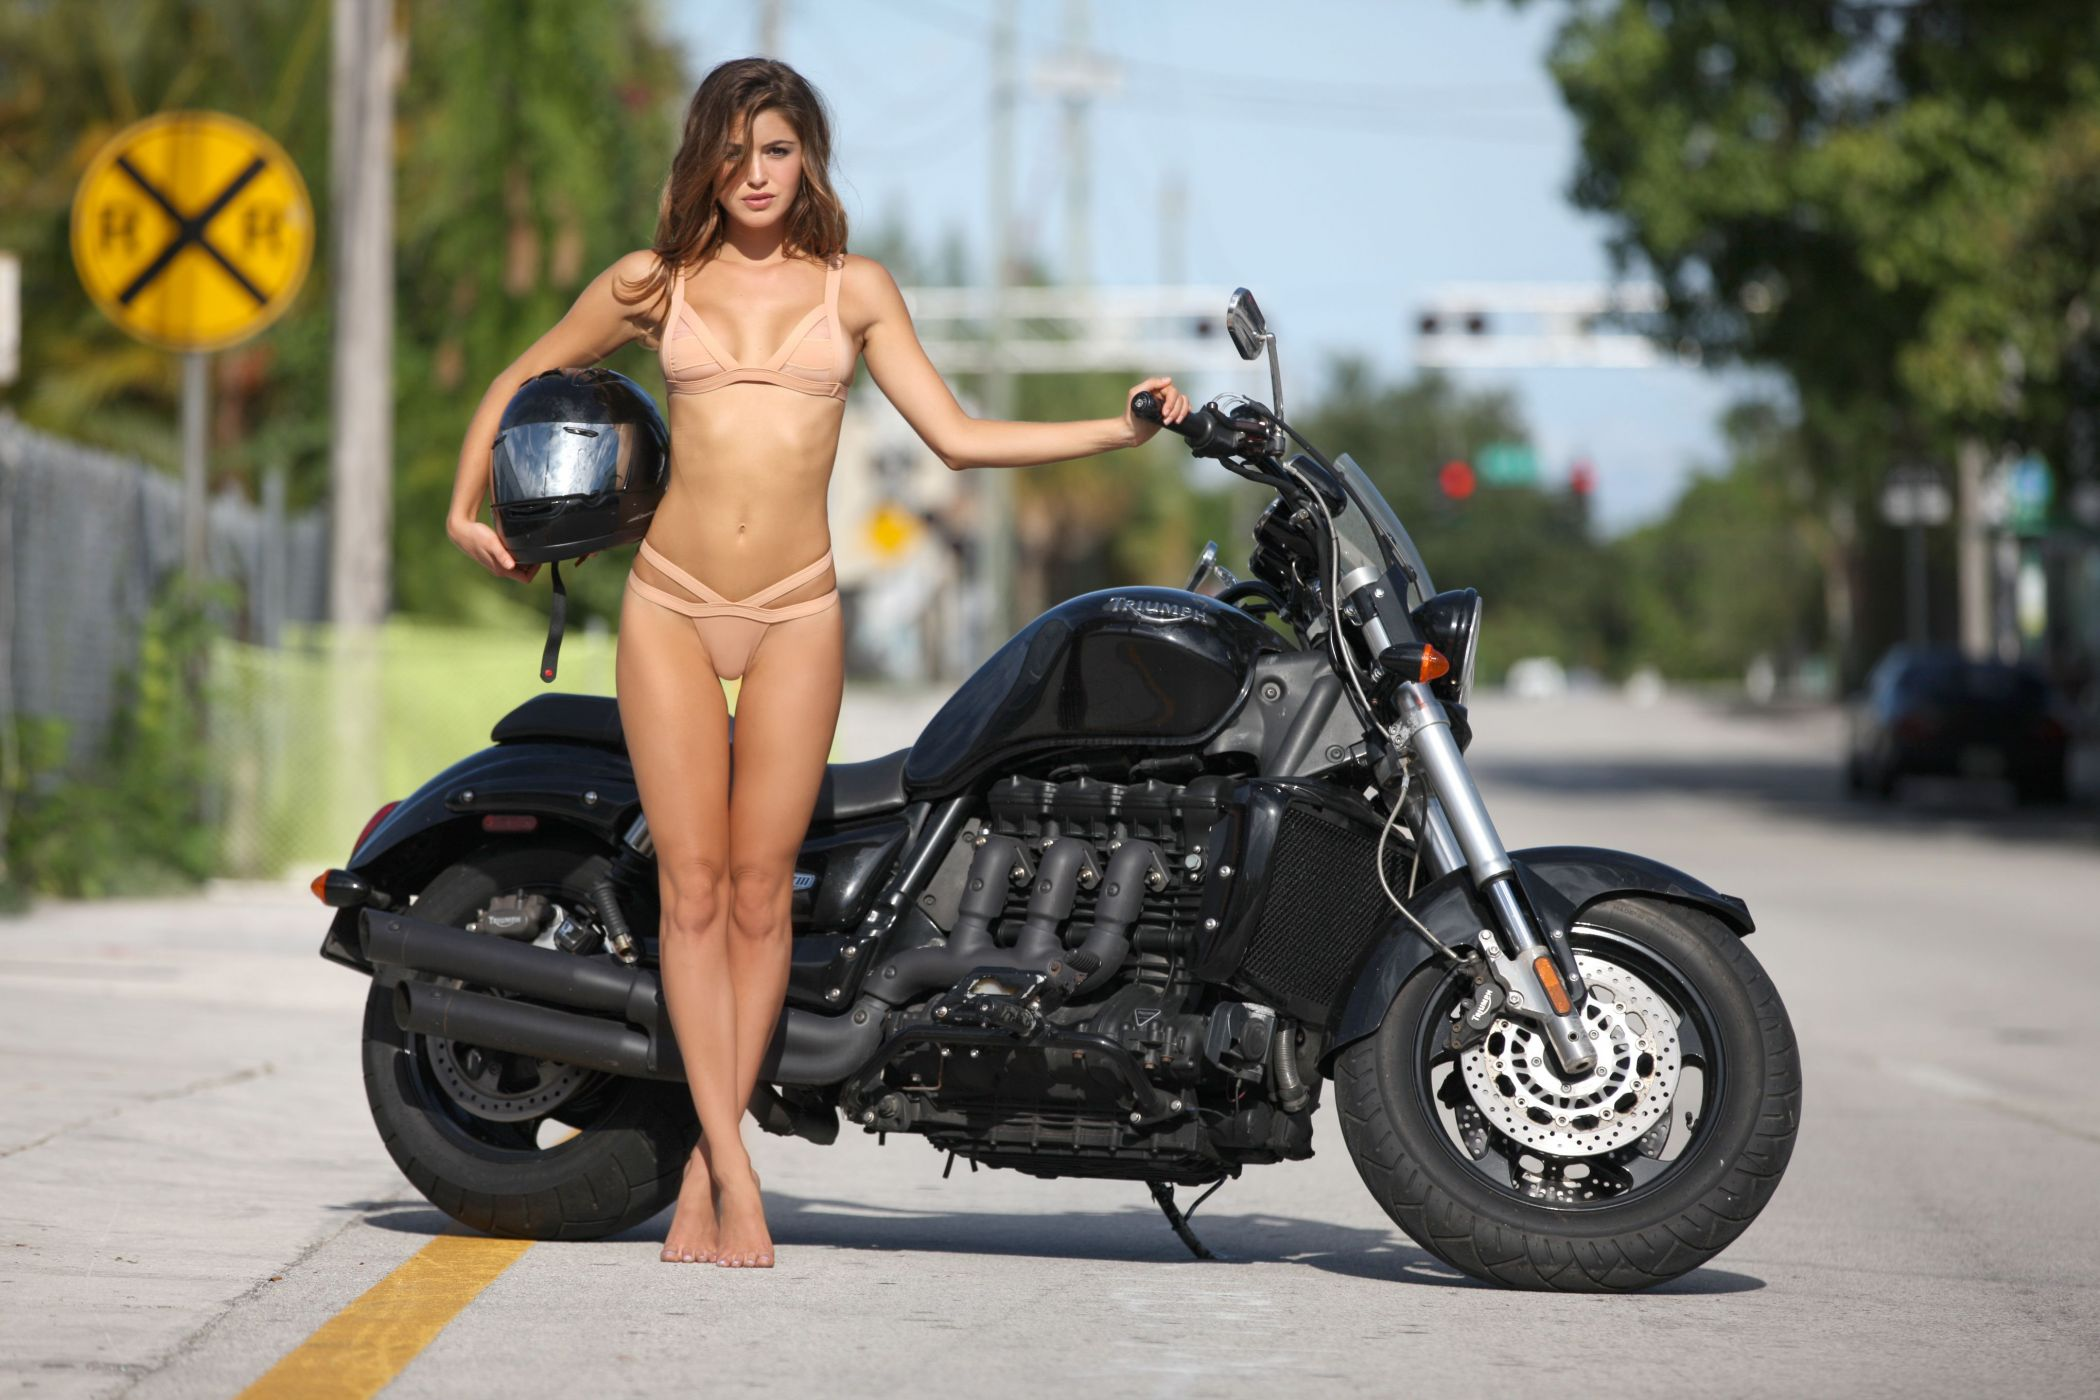 Topless Harley Babes On Bikes